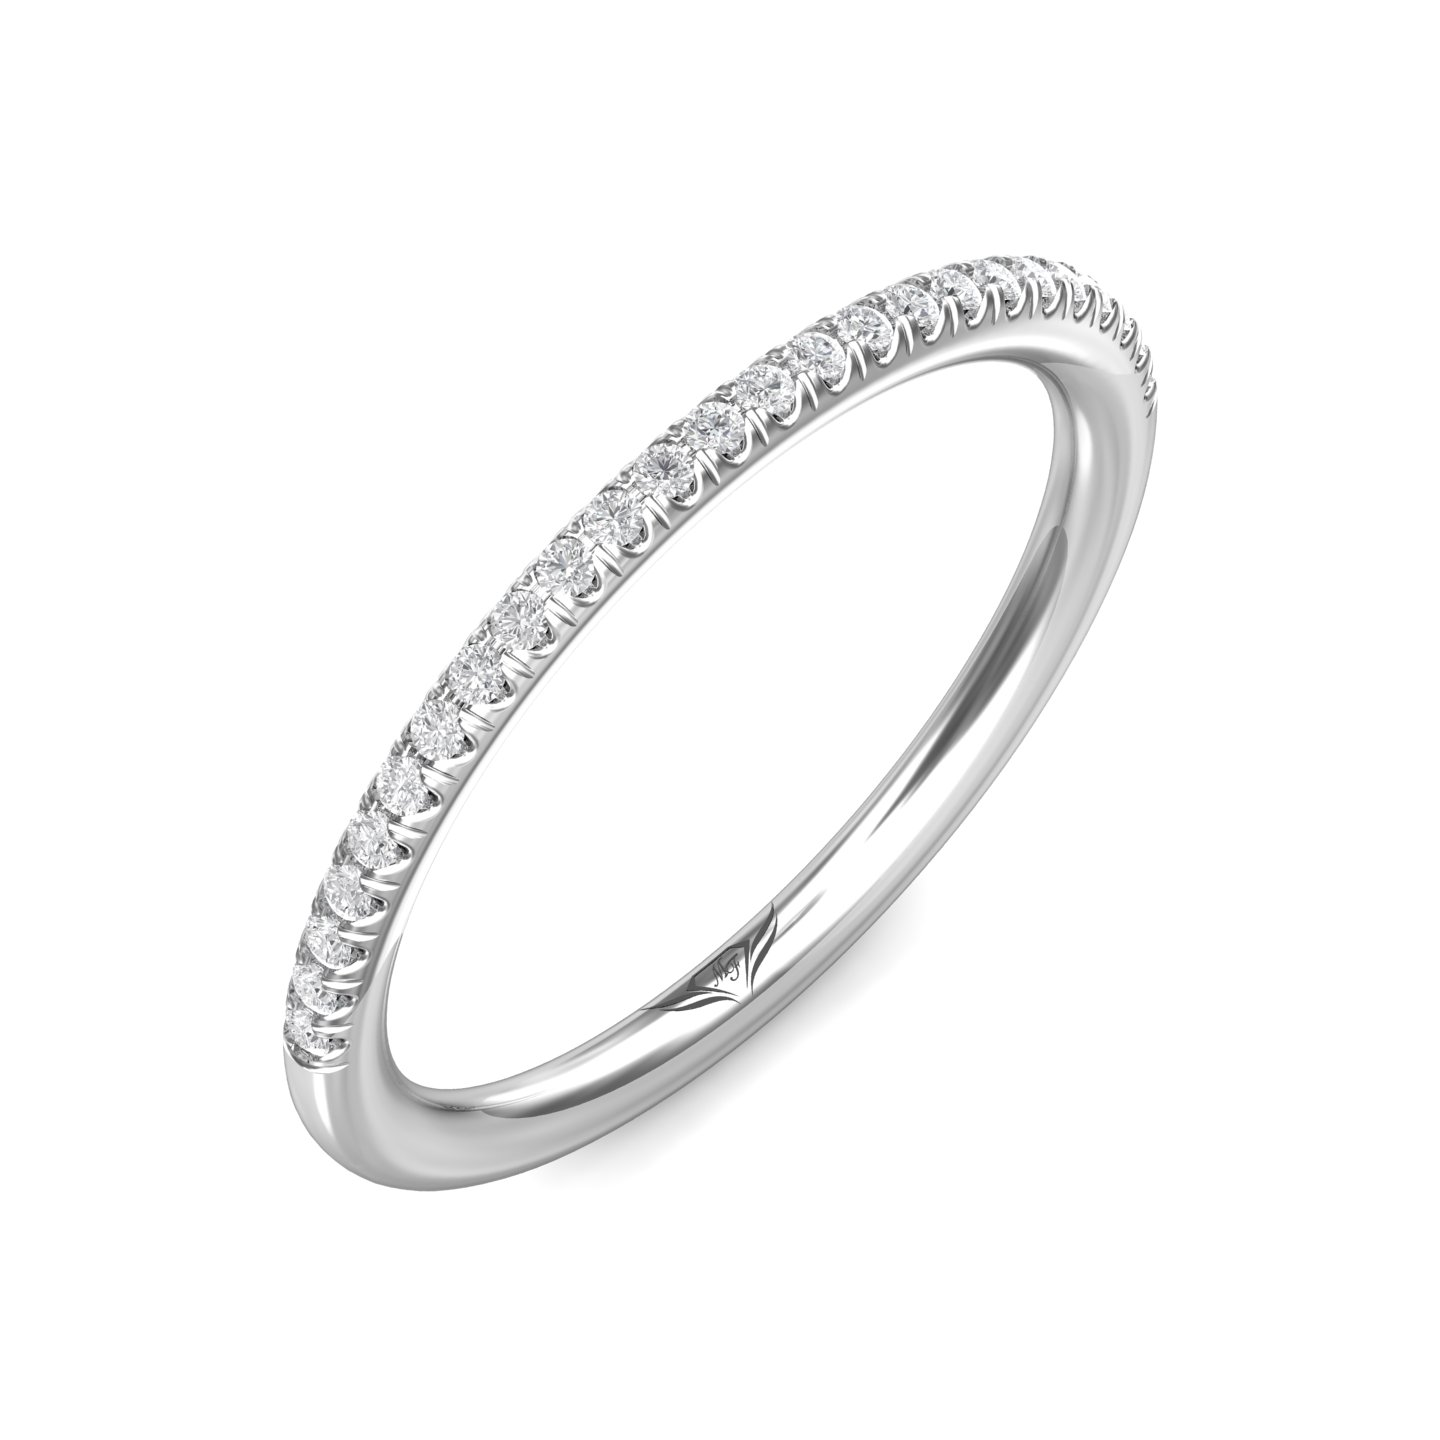 Rings - 14K White Gold FlyerFit Micropave Cutdown Wedding Band - image #5